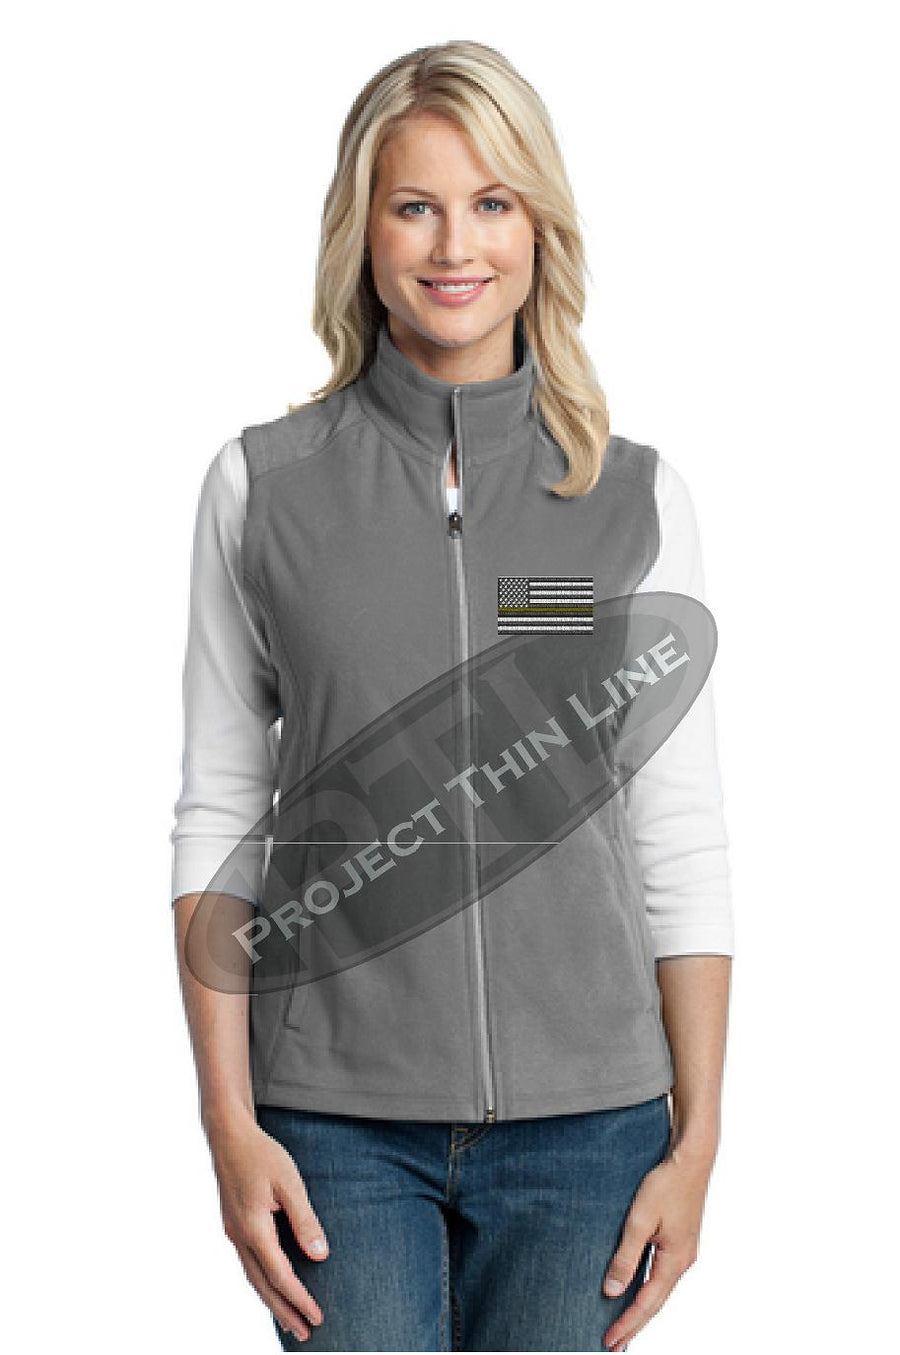 Ladies Grey Microfleece Vest with Thin Gold Line Subdued American Flag